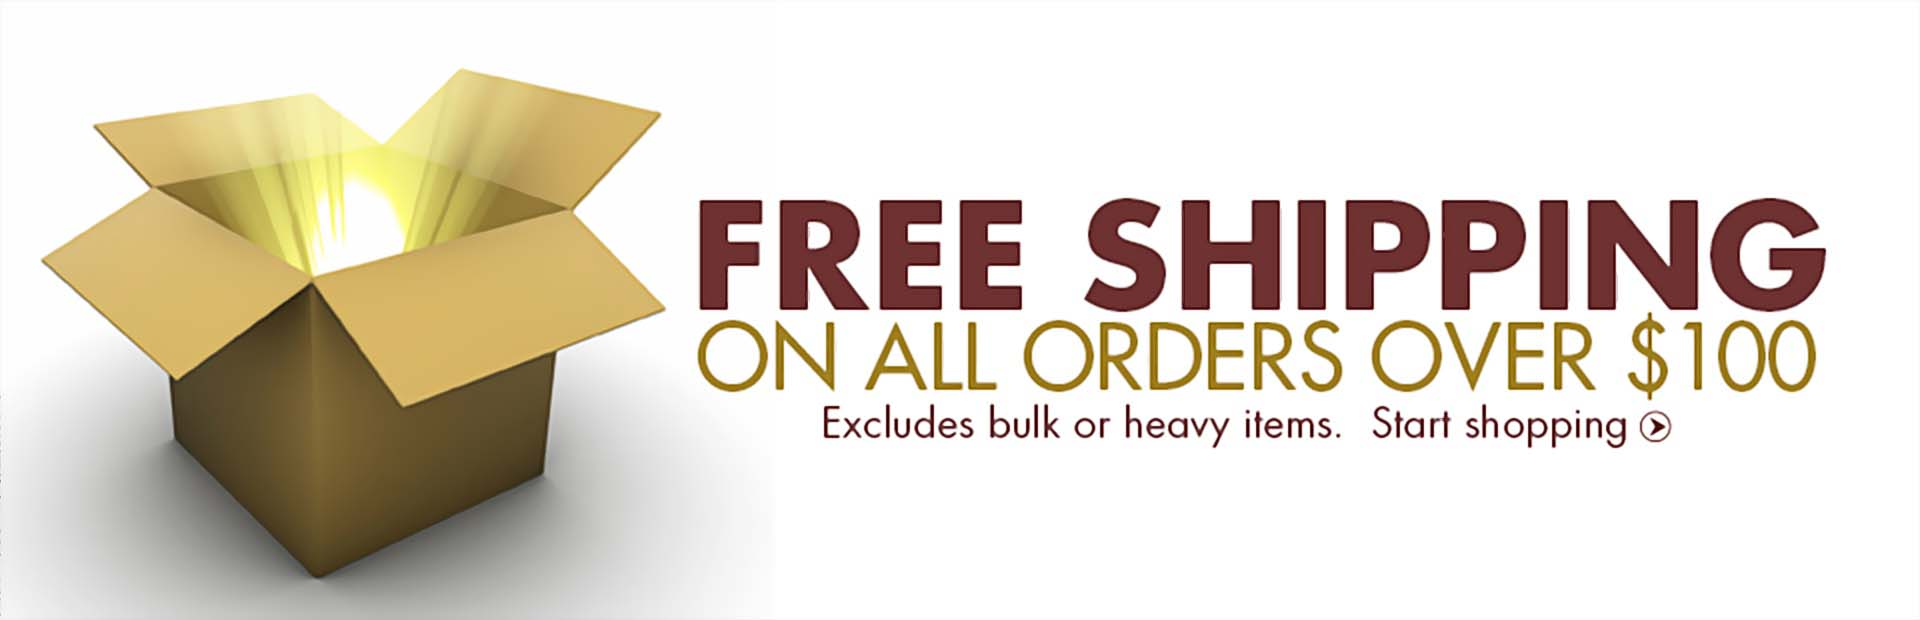 Get free shipping on all orders over $100! Offer excludes bulk or heavy items. Click here to start shopping.